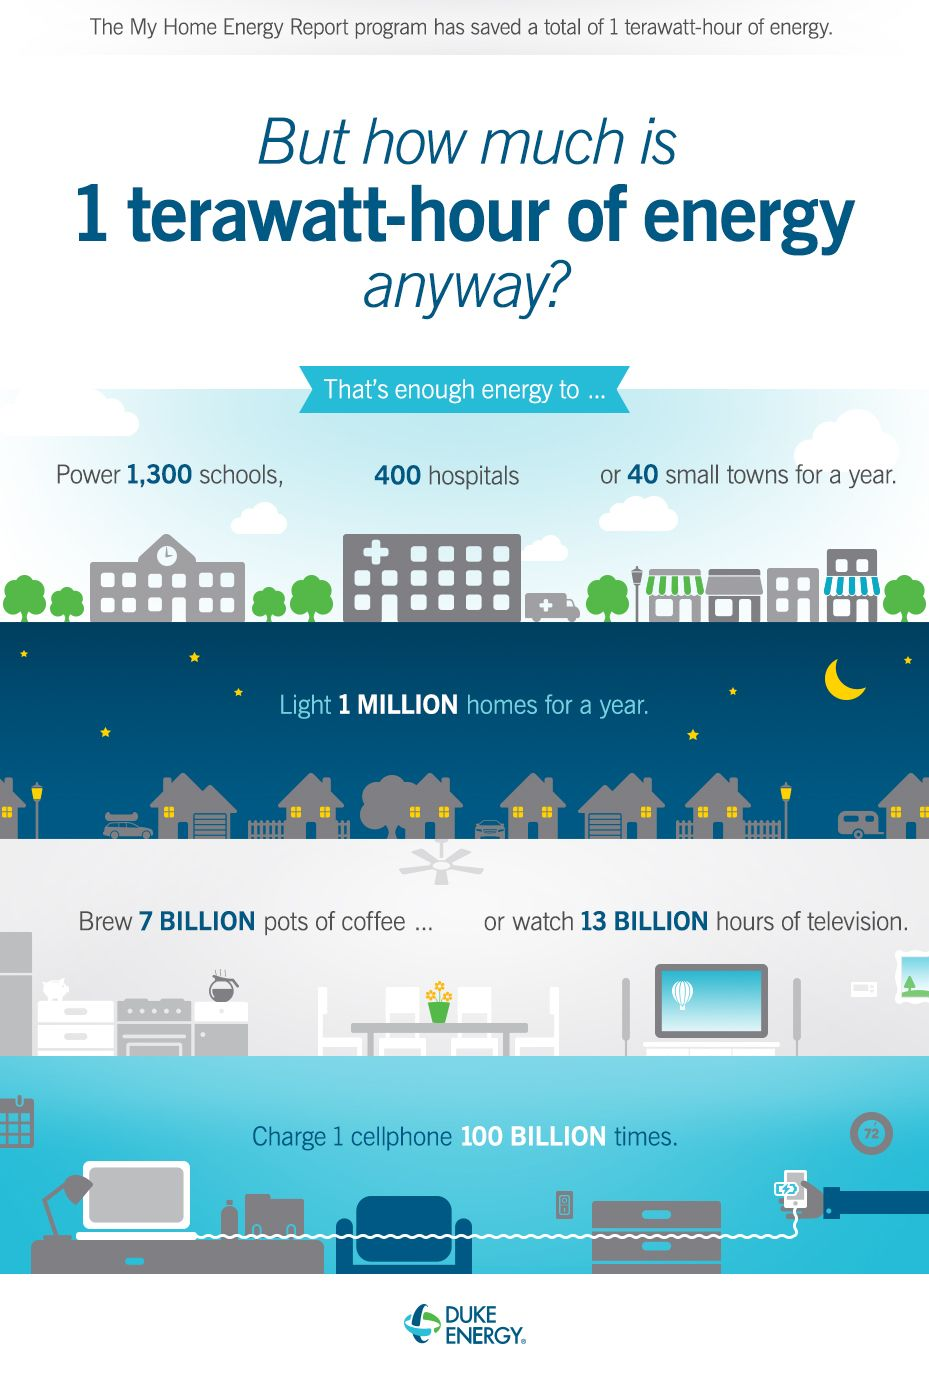 170190-My-Home-Energy-Report-Infographic-final